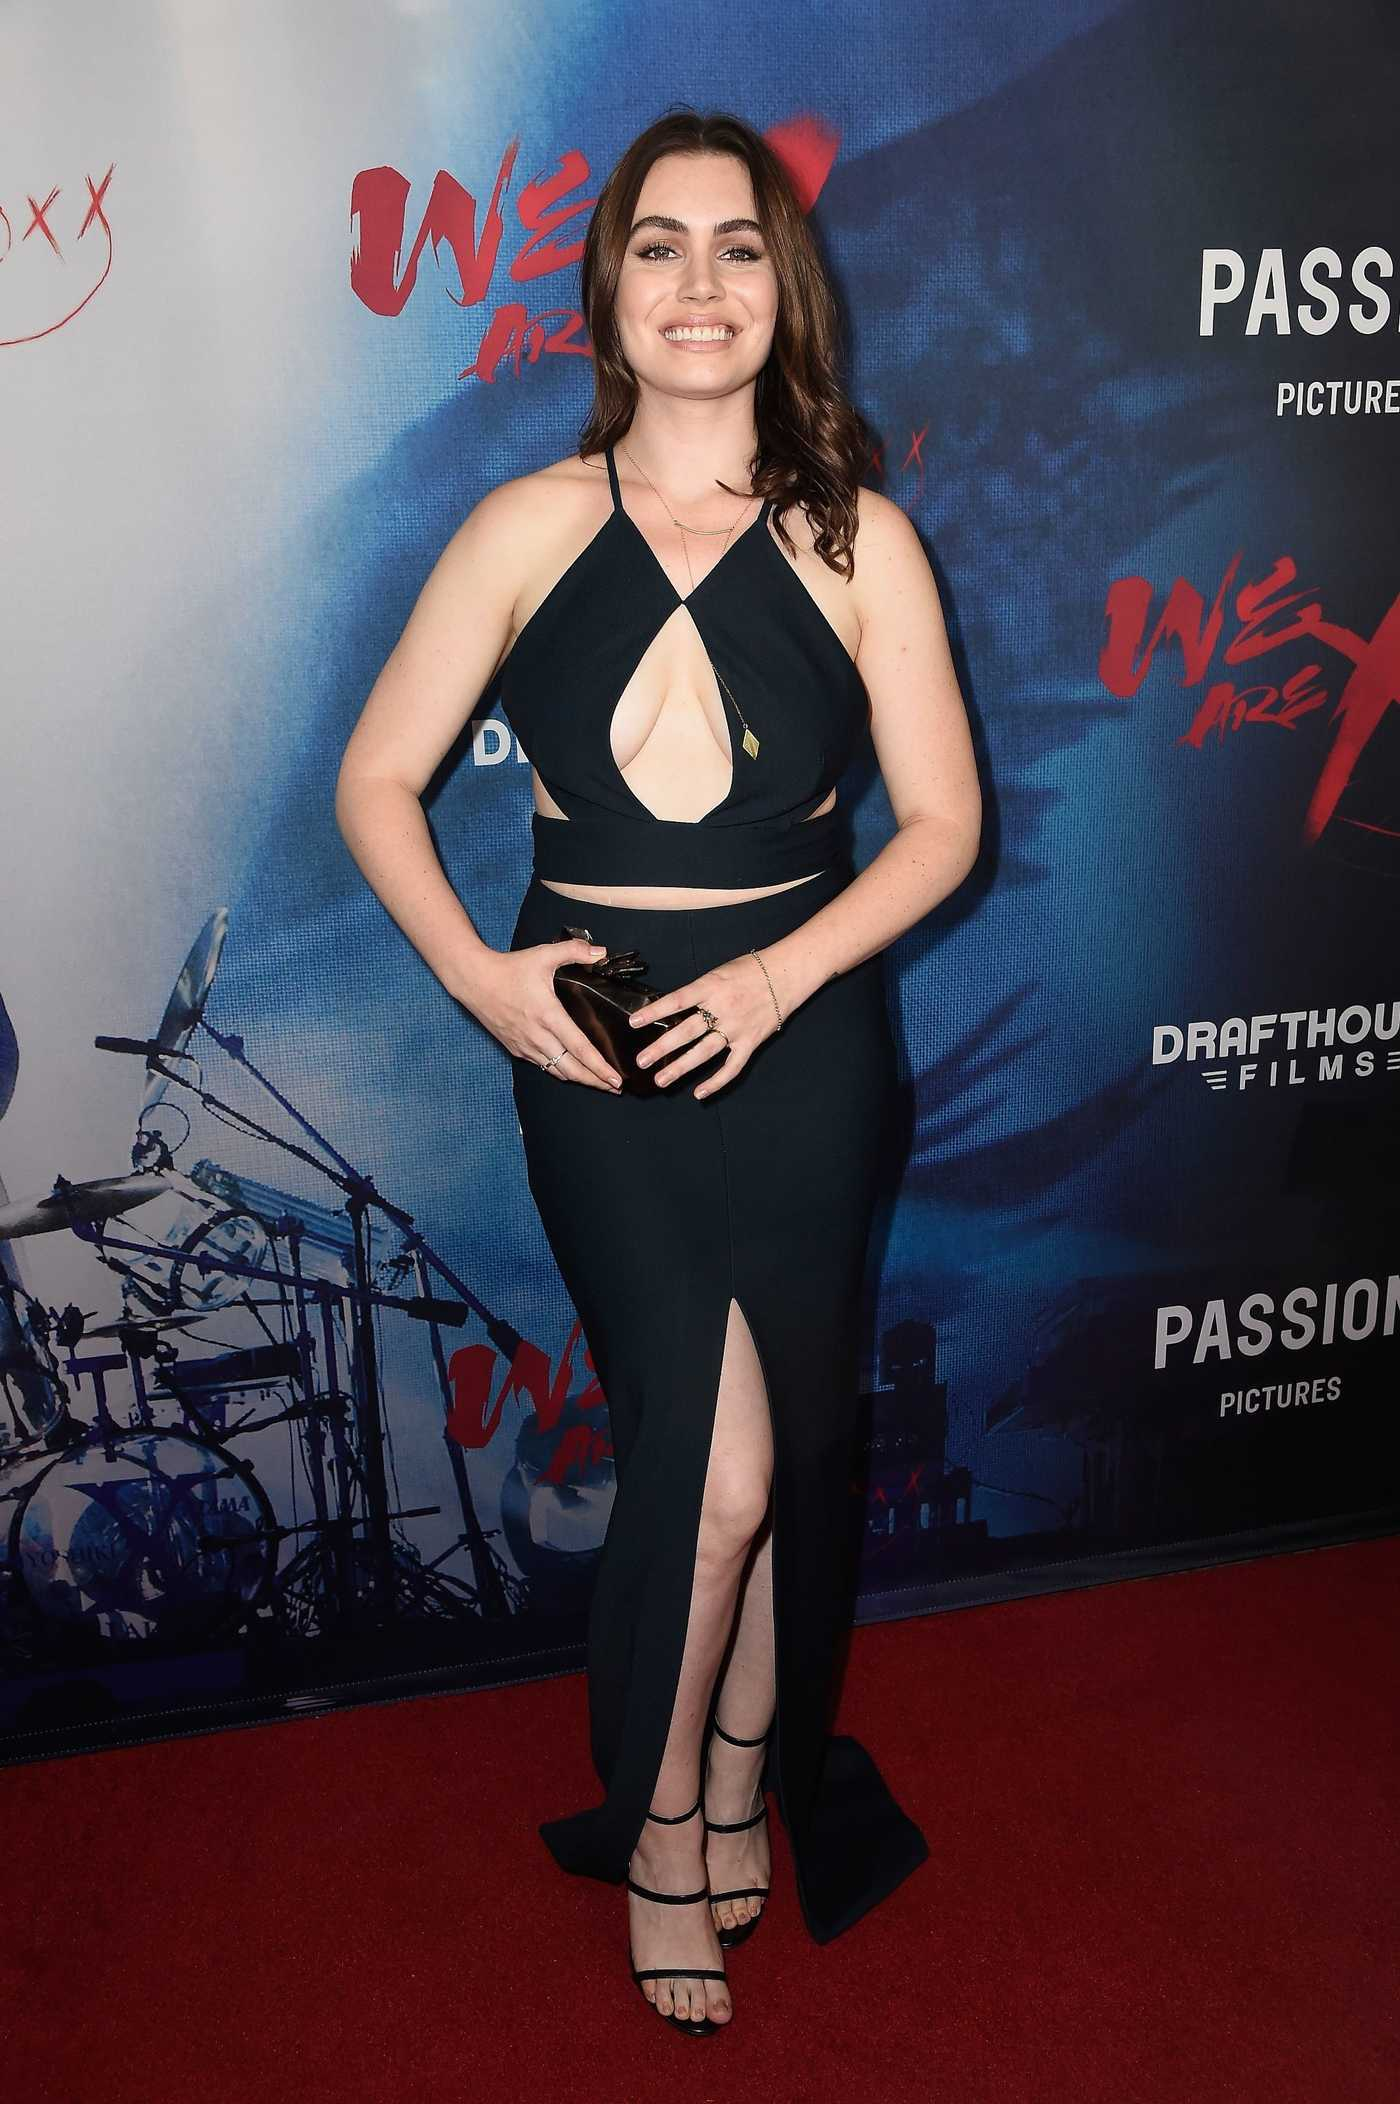 Sophie Simmons at the We are X Premiere in Hollywood 10/03/2016